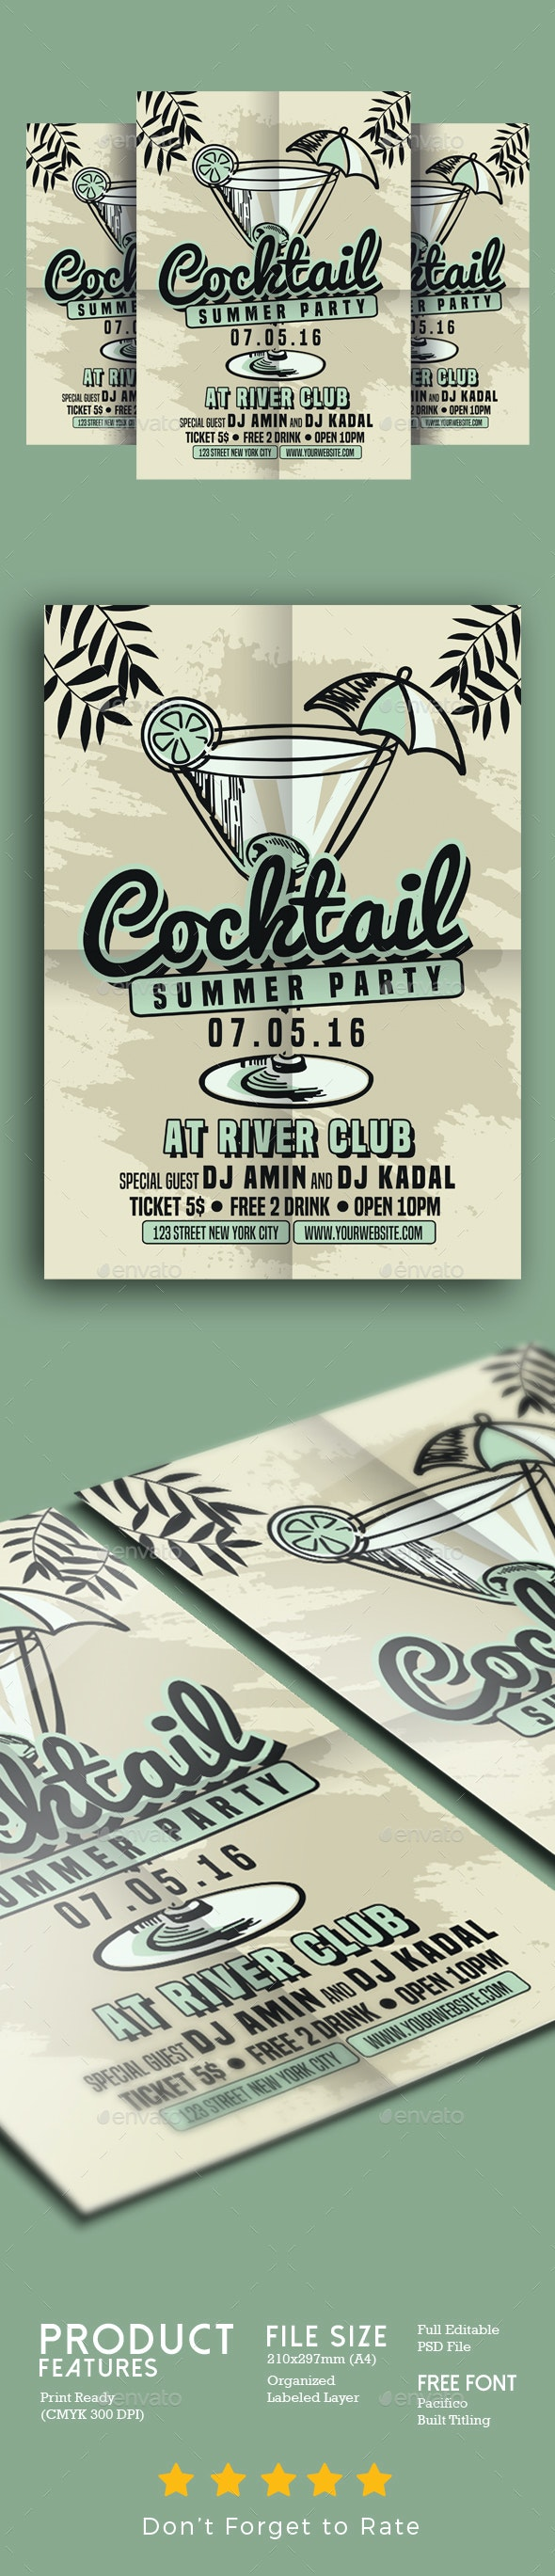 Cocktail Summer Party - Events Flyers